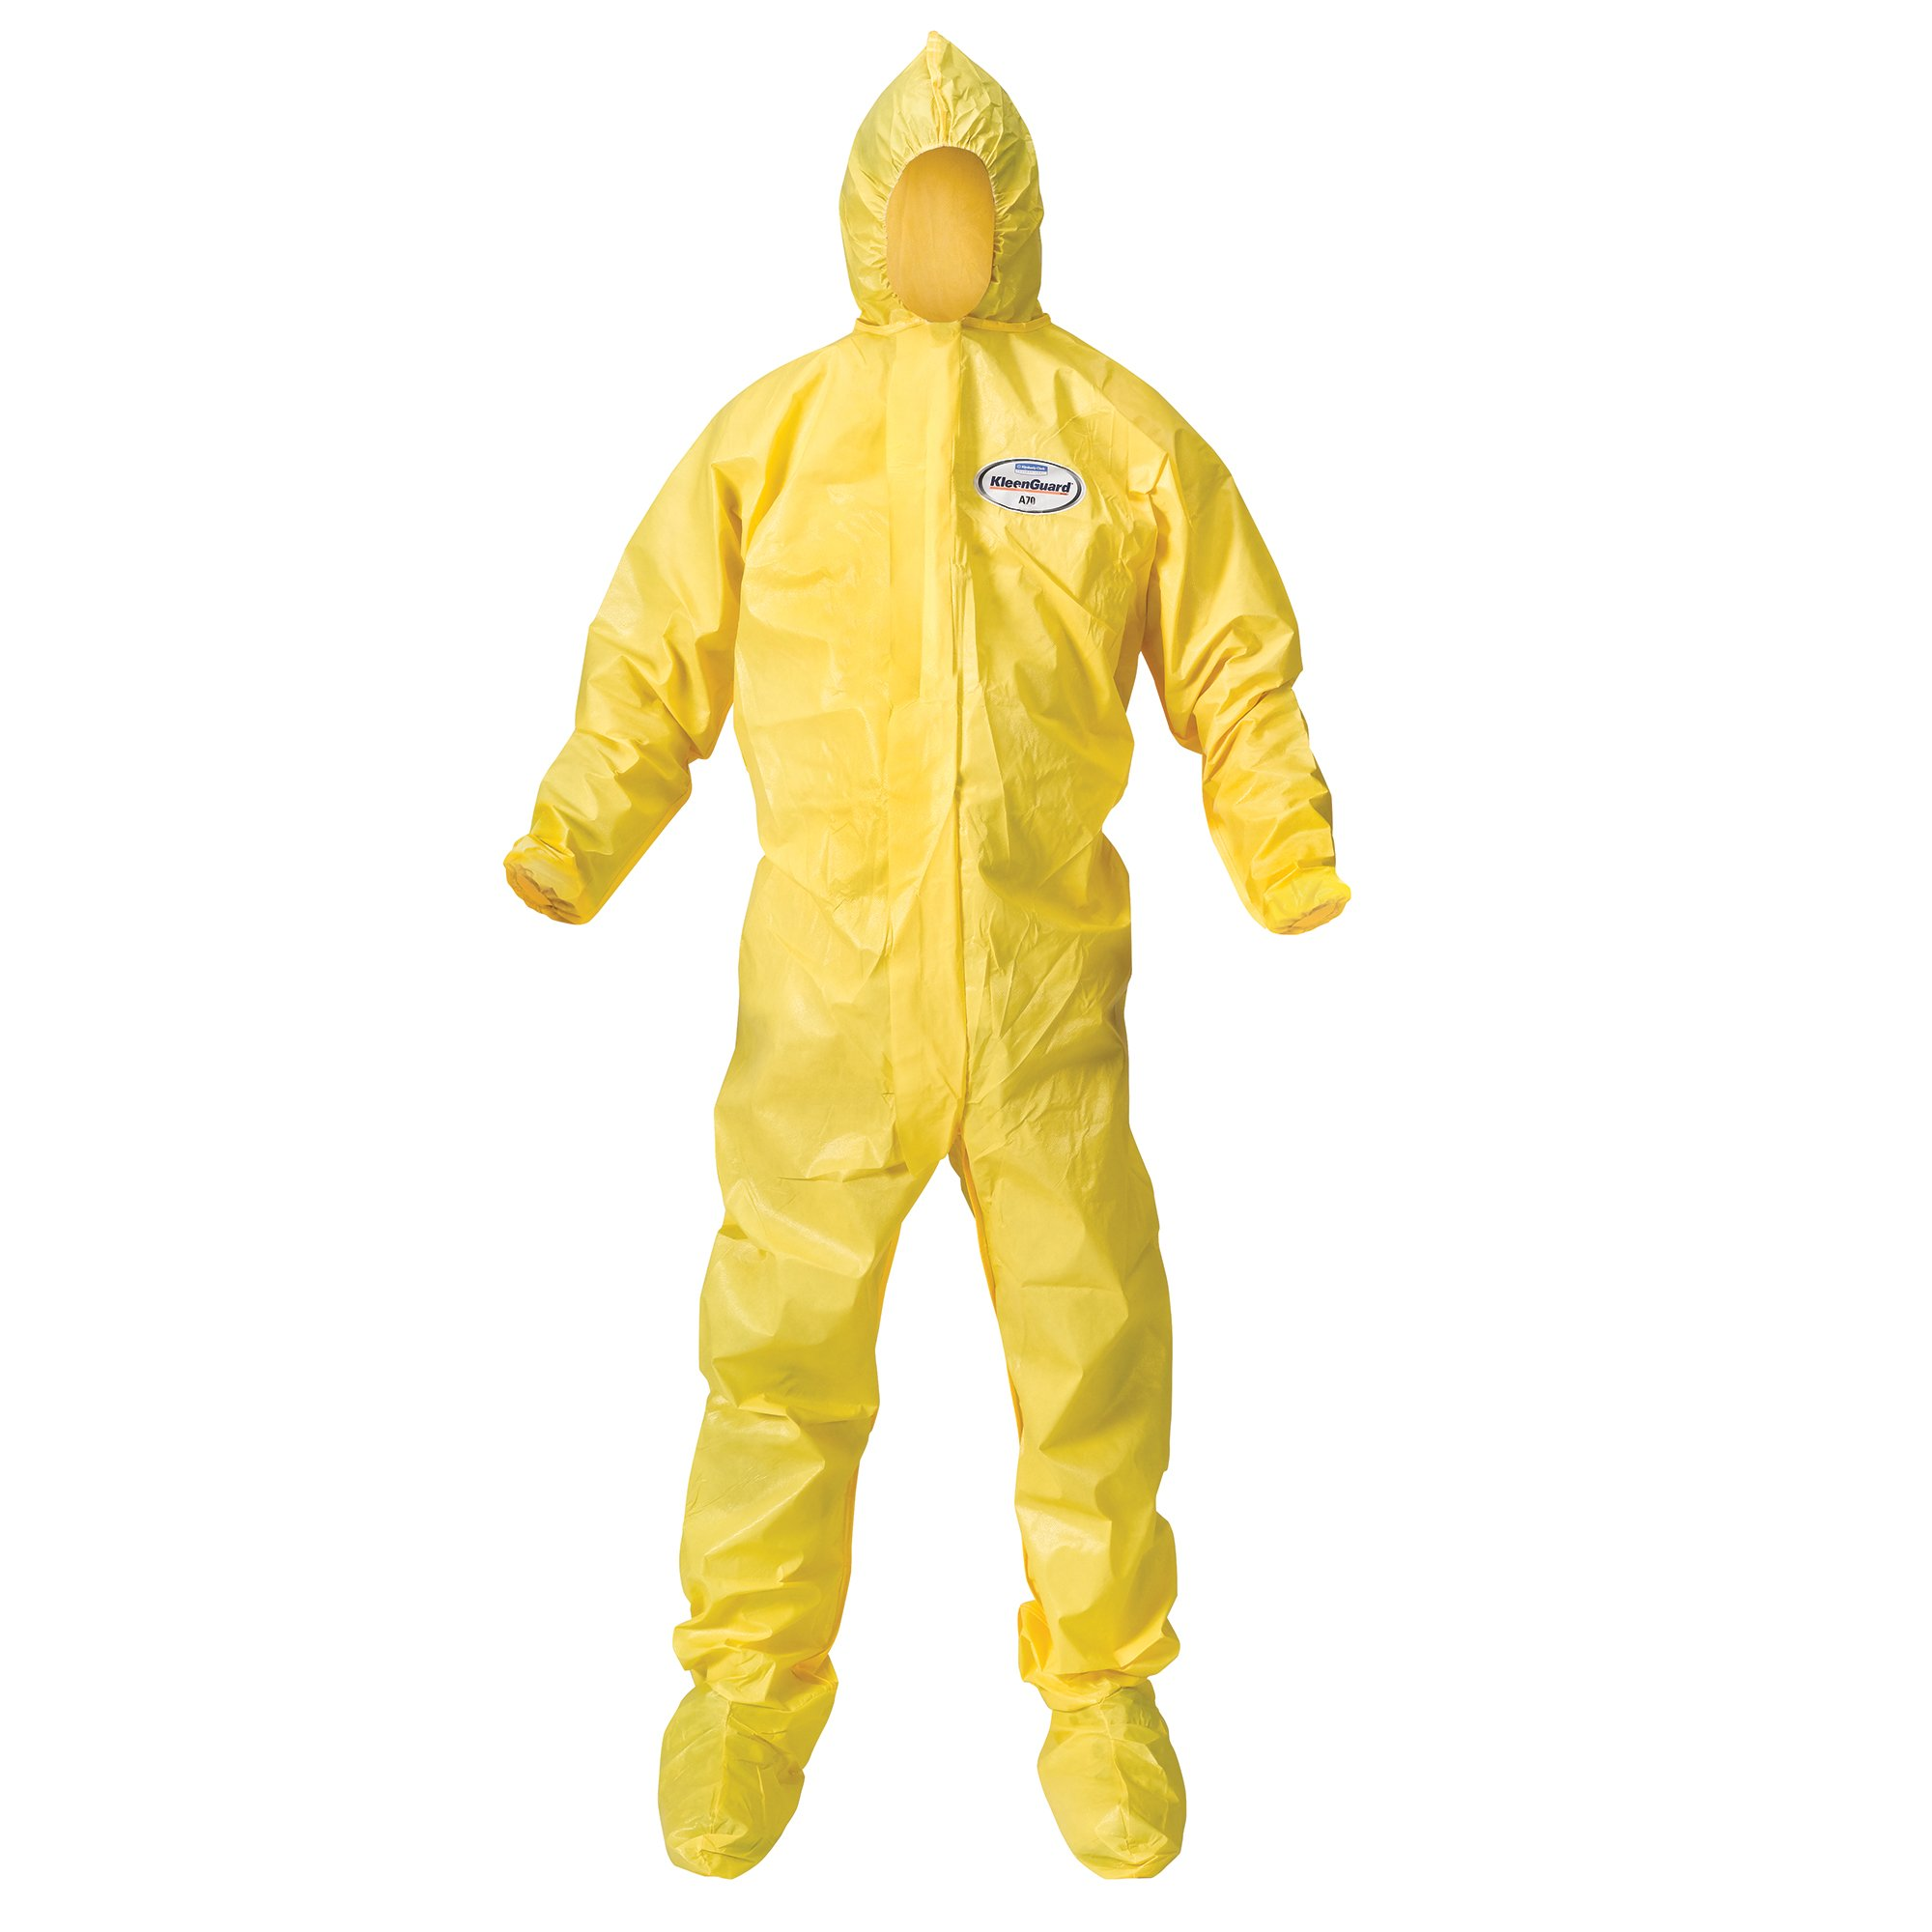 Kleenguard A70 Chemical Spray Protection Coveralls (00685) Suit, Hooded, Booted, Zip Front, Elastic Wrists, Size 2XL, Yellow, 12 Garments / Case